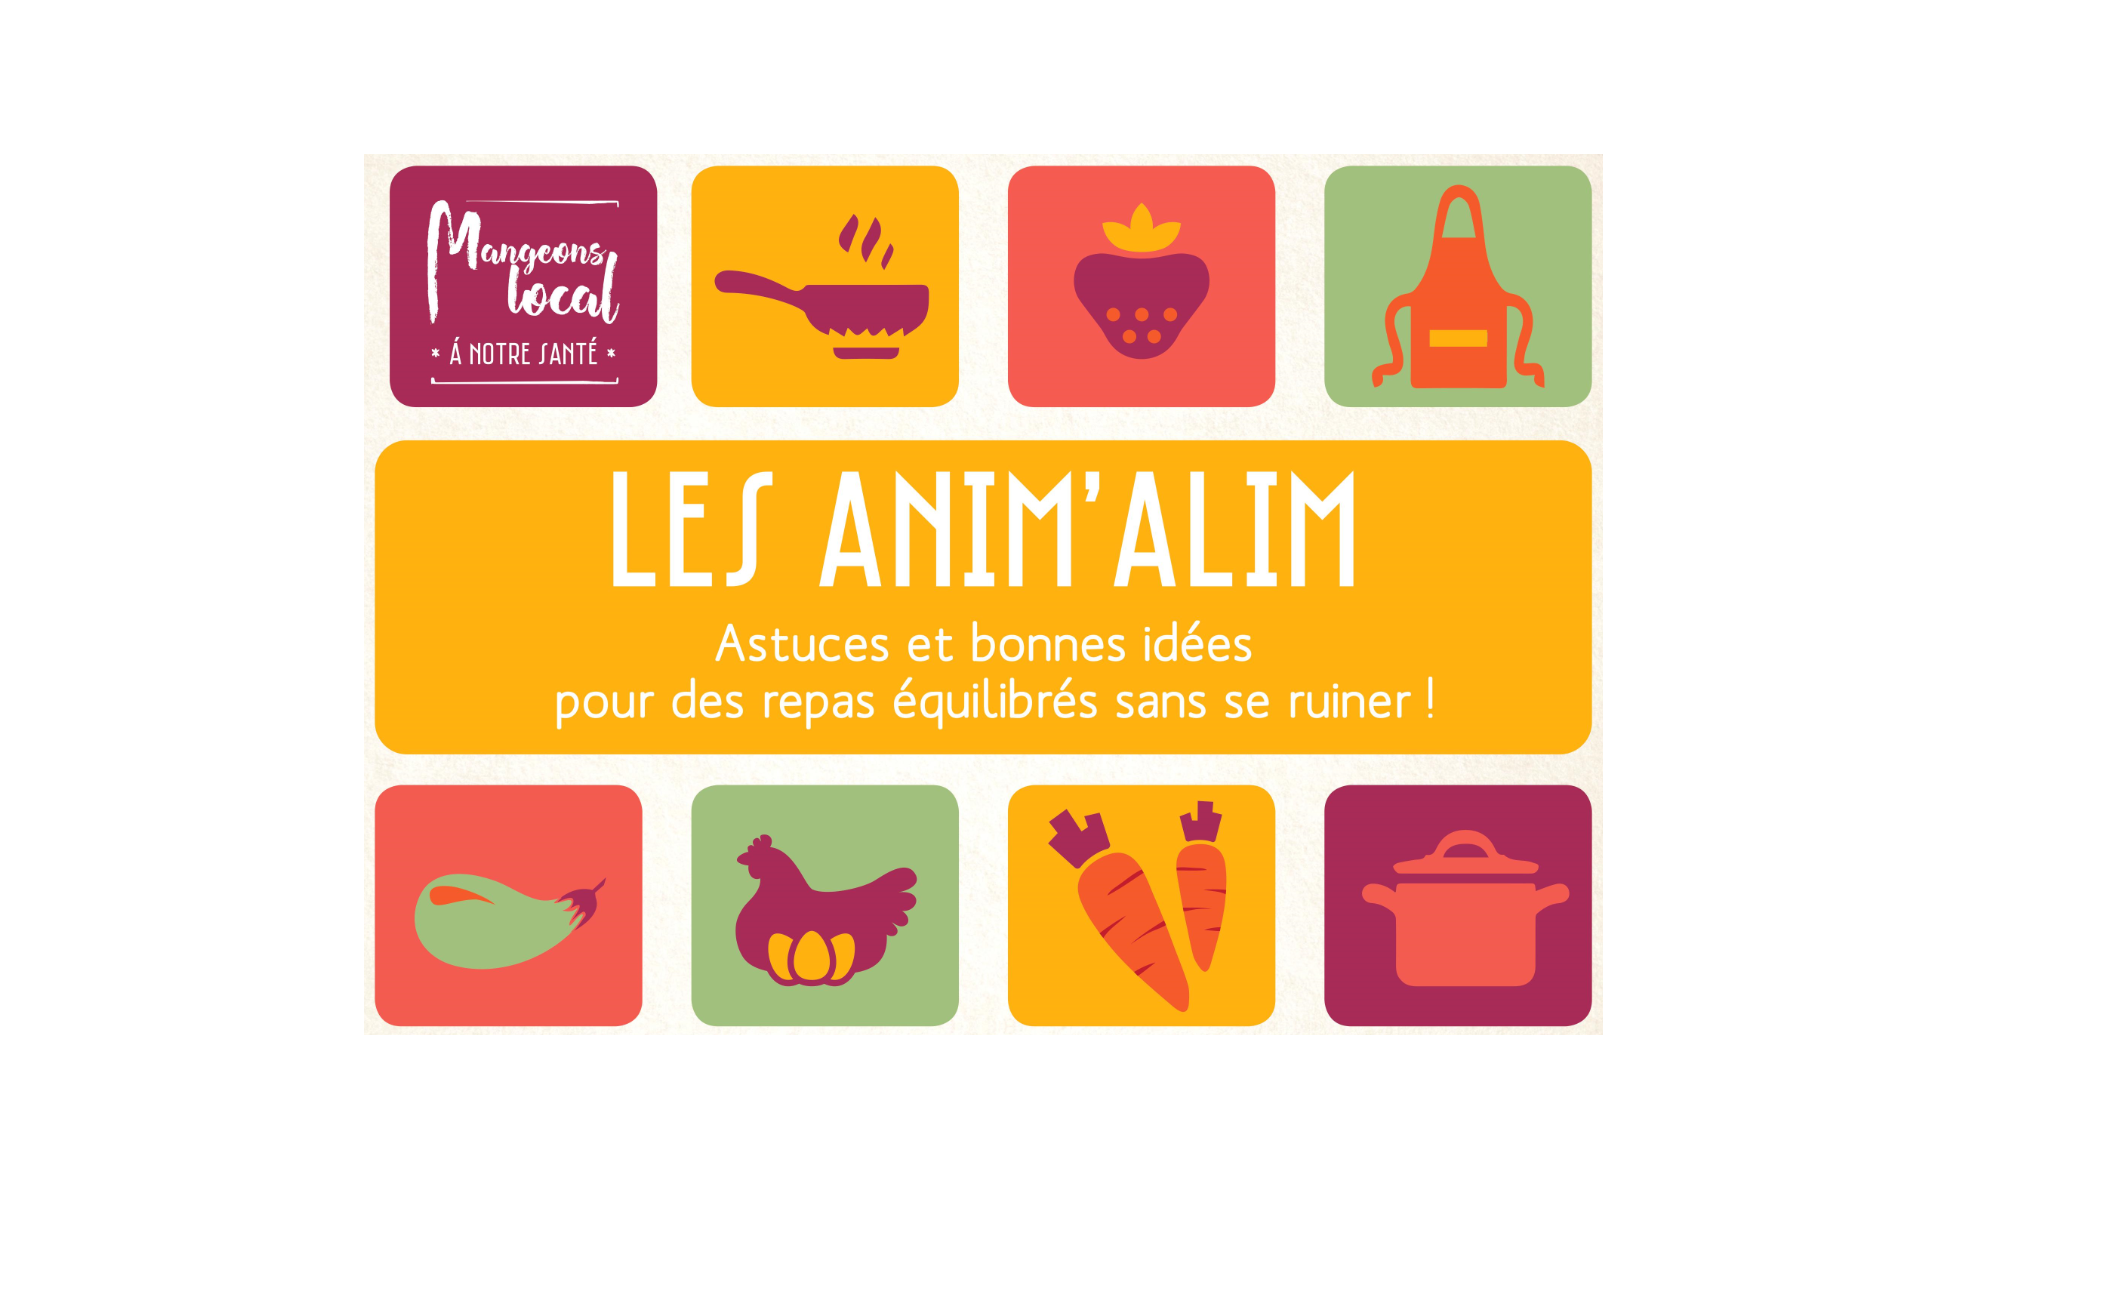 Animation alimentation